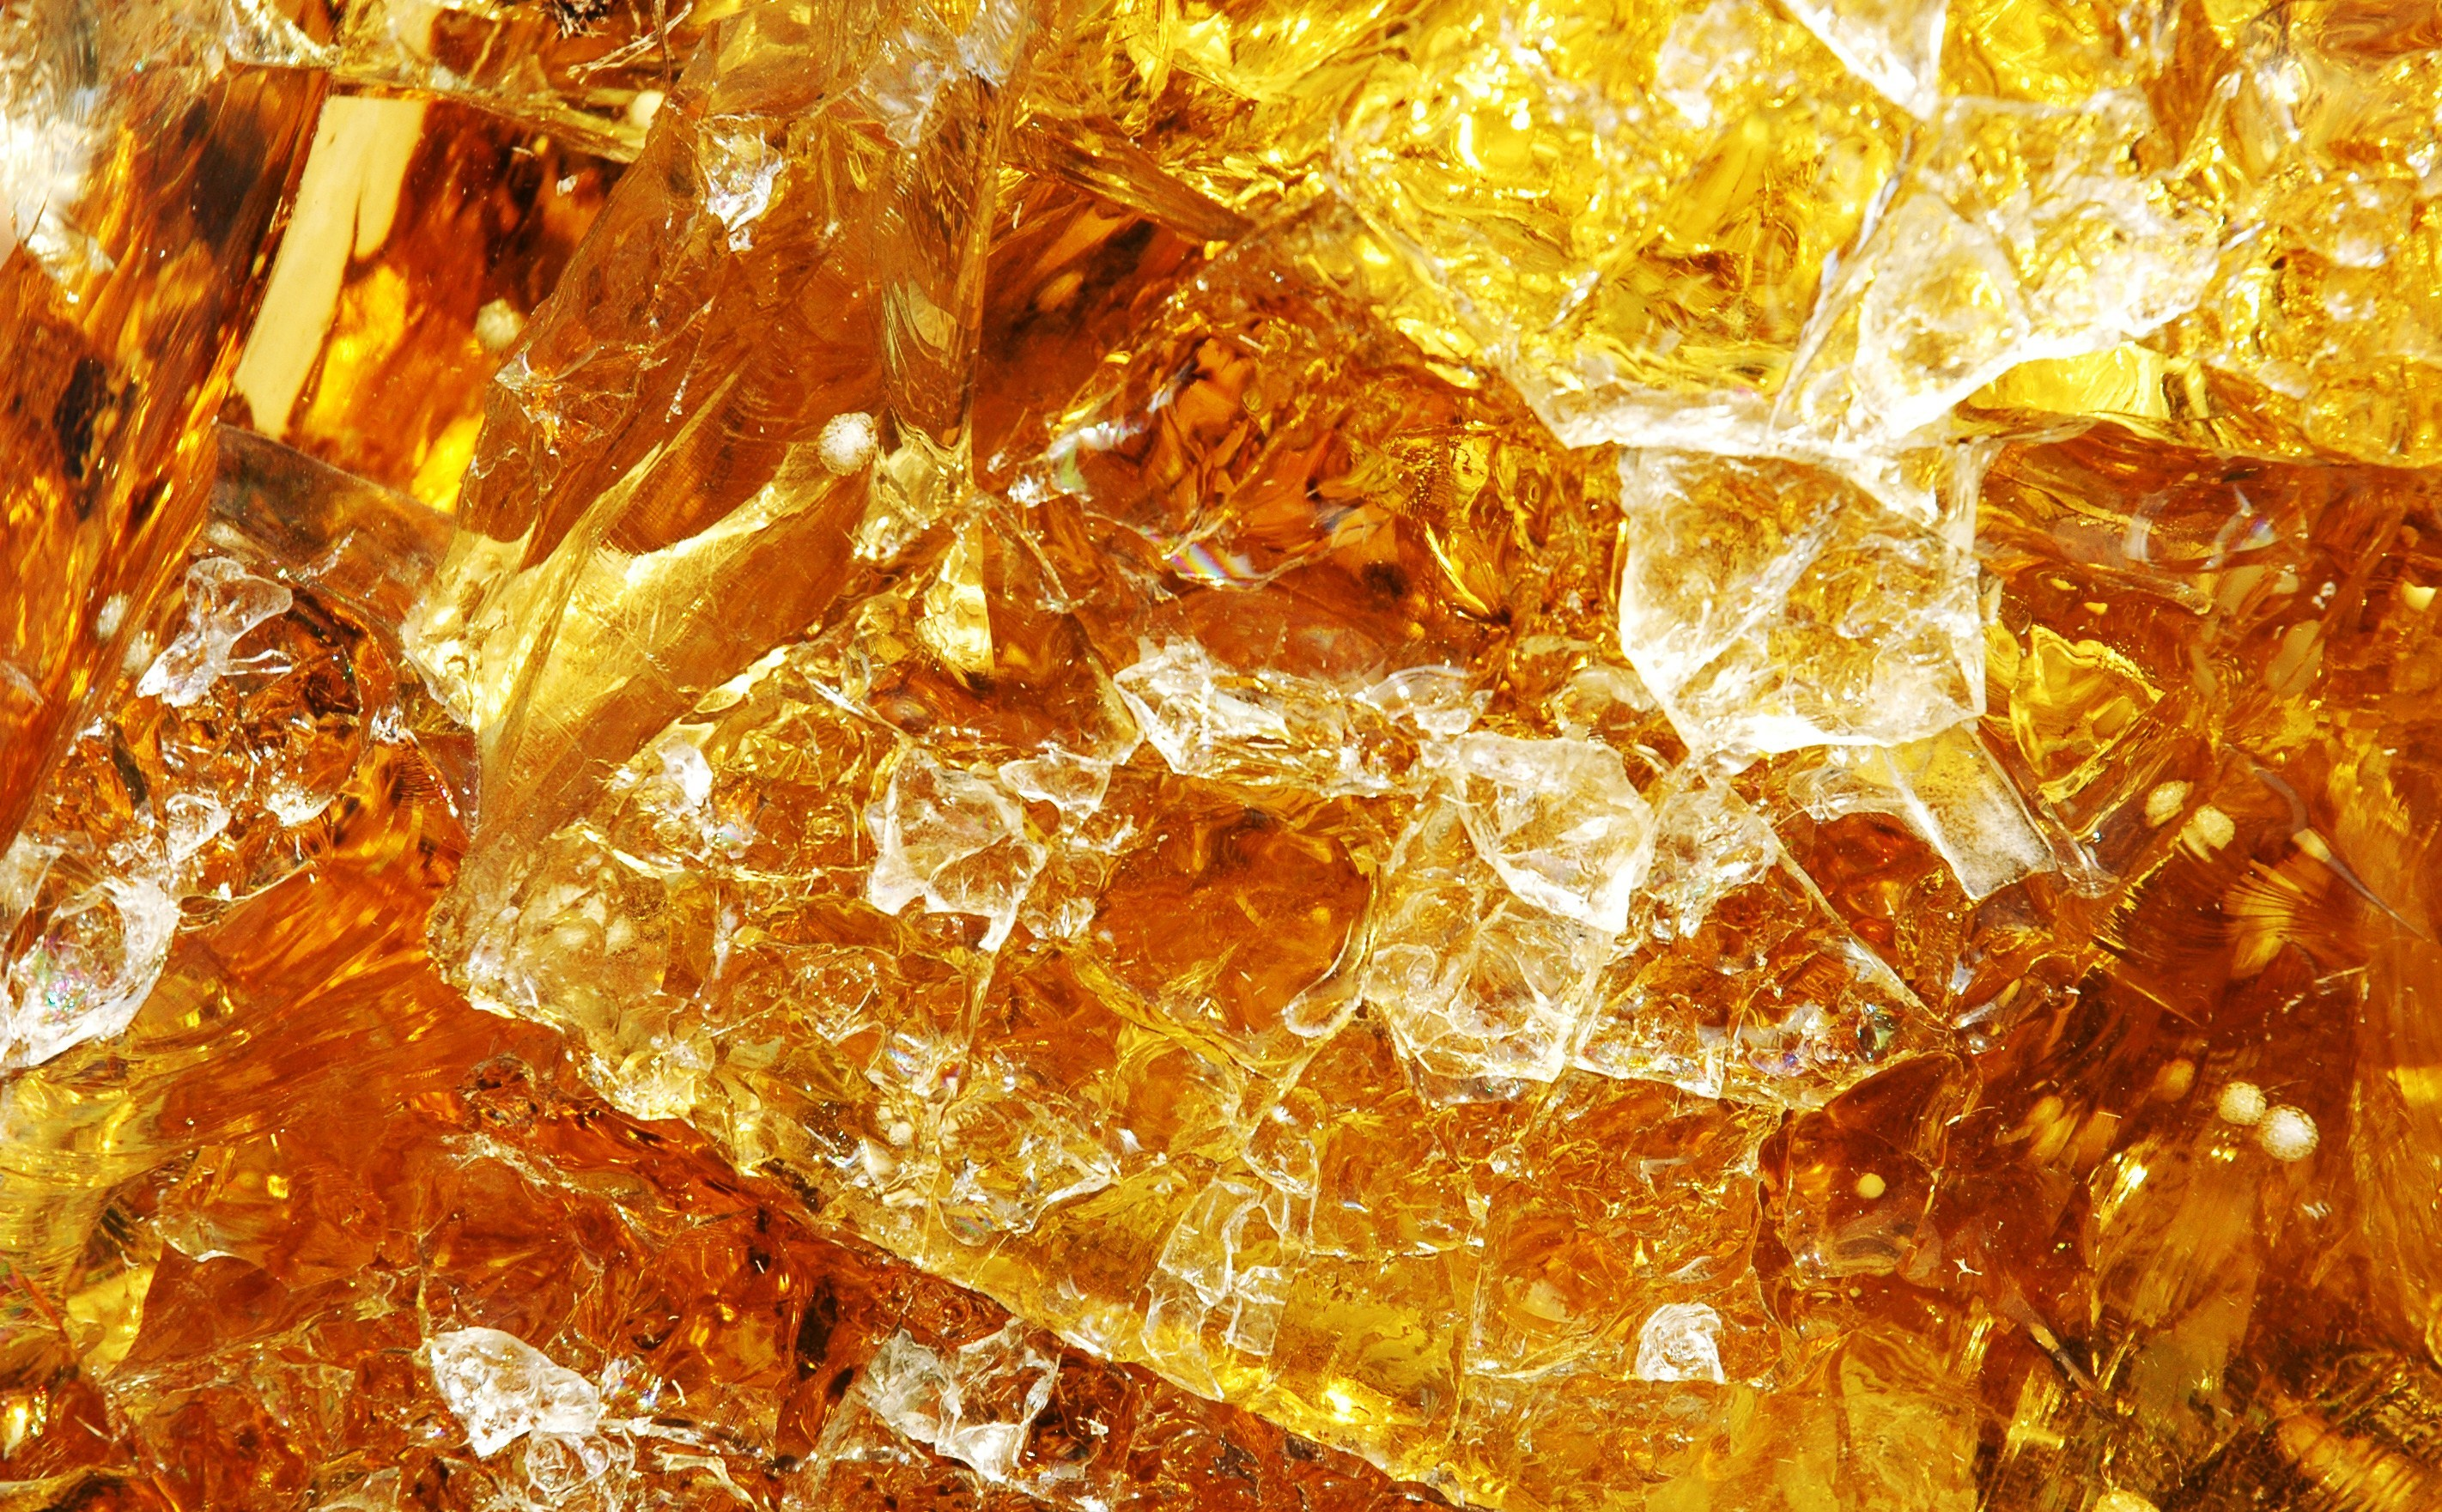 amber gemstone HD Wallpaper